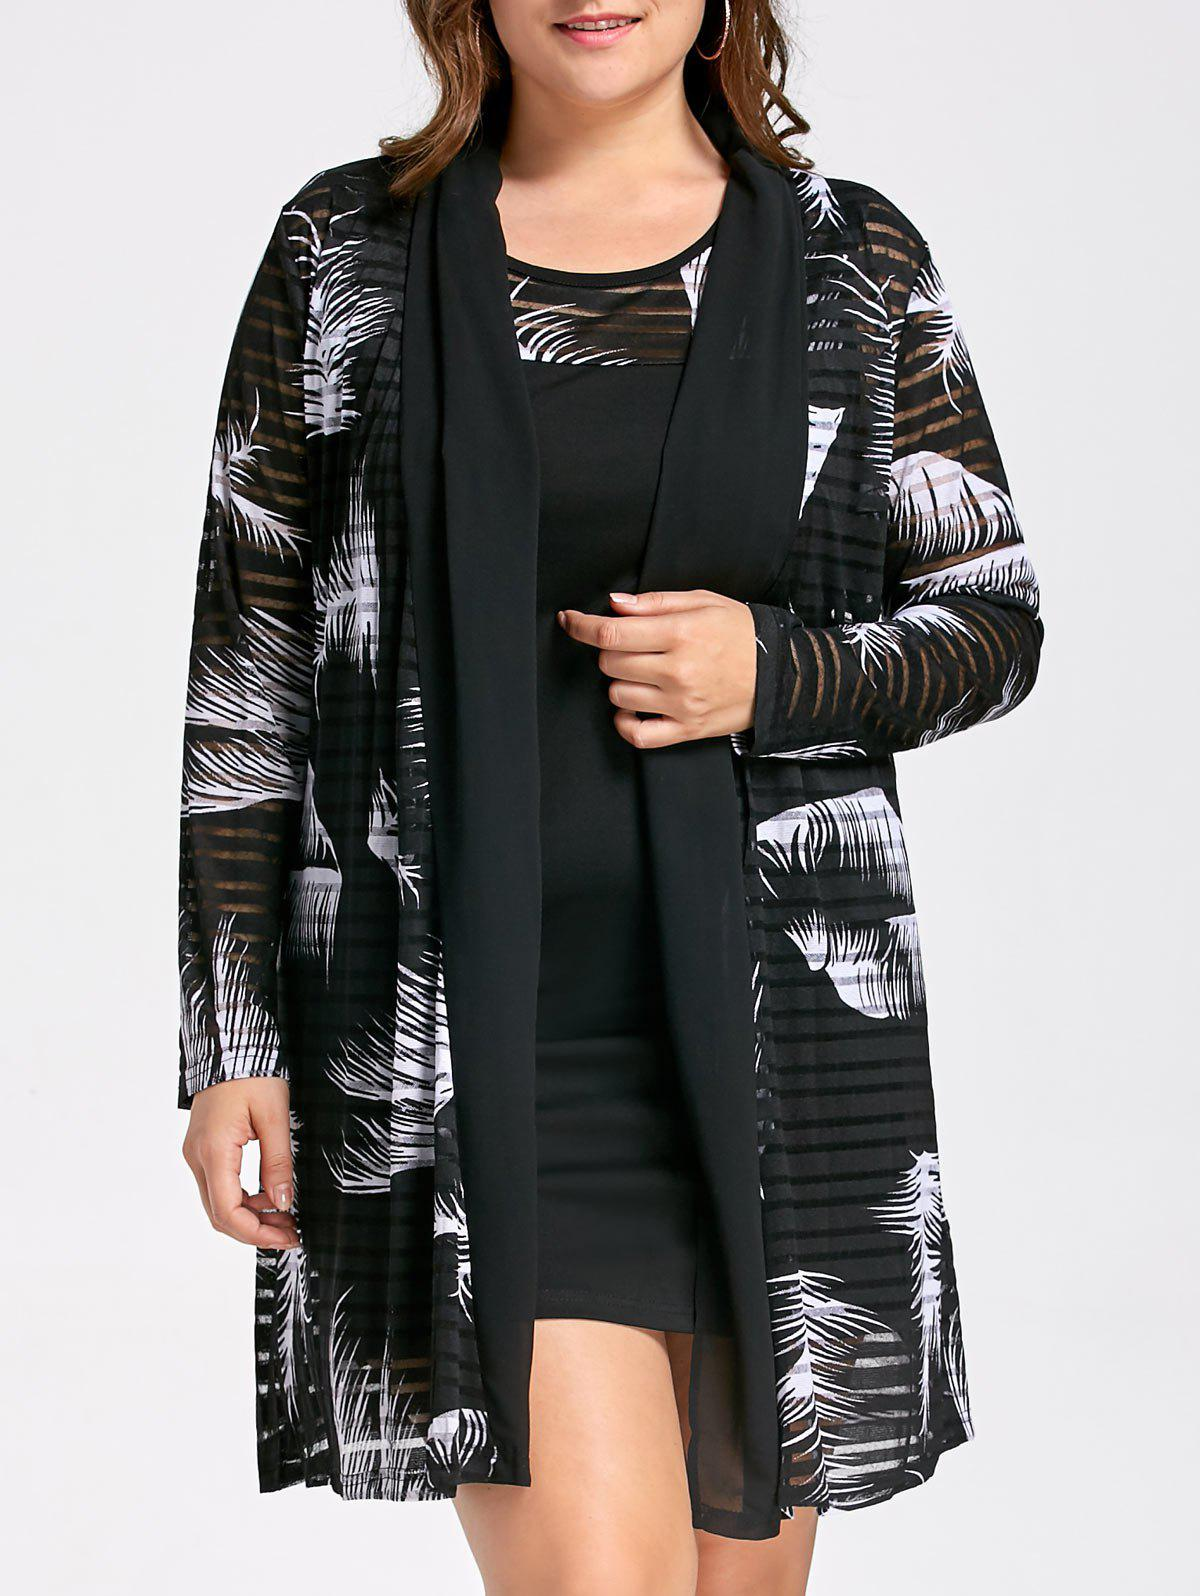 Plus Size Tank Dress with Long Mesh Sheer Cardigan 224463706